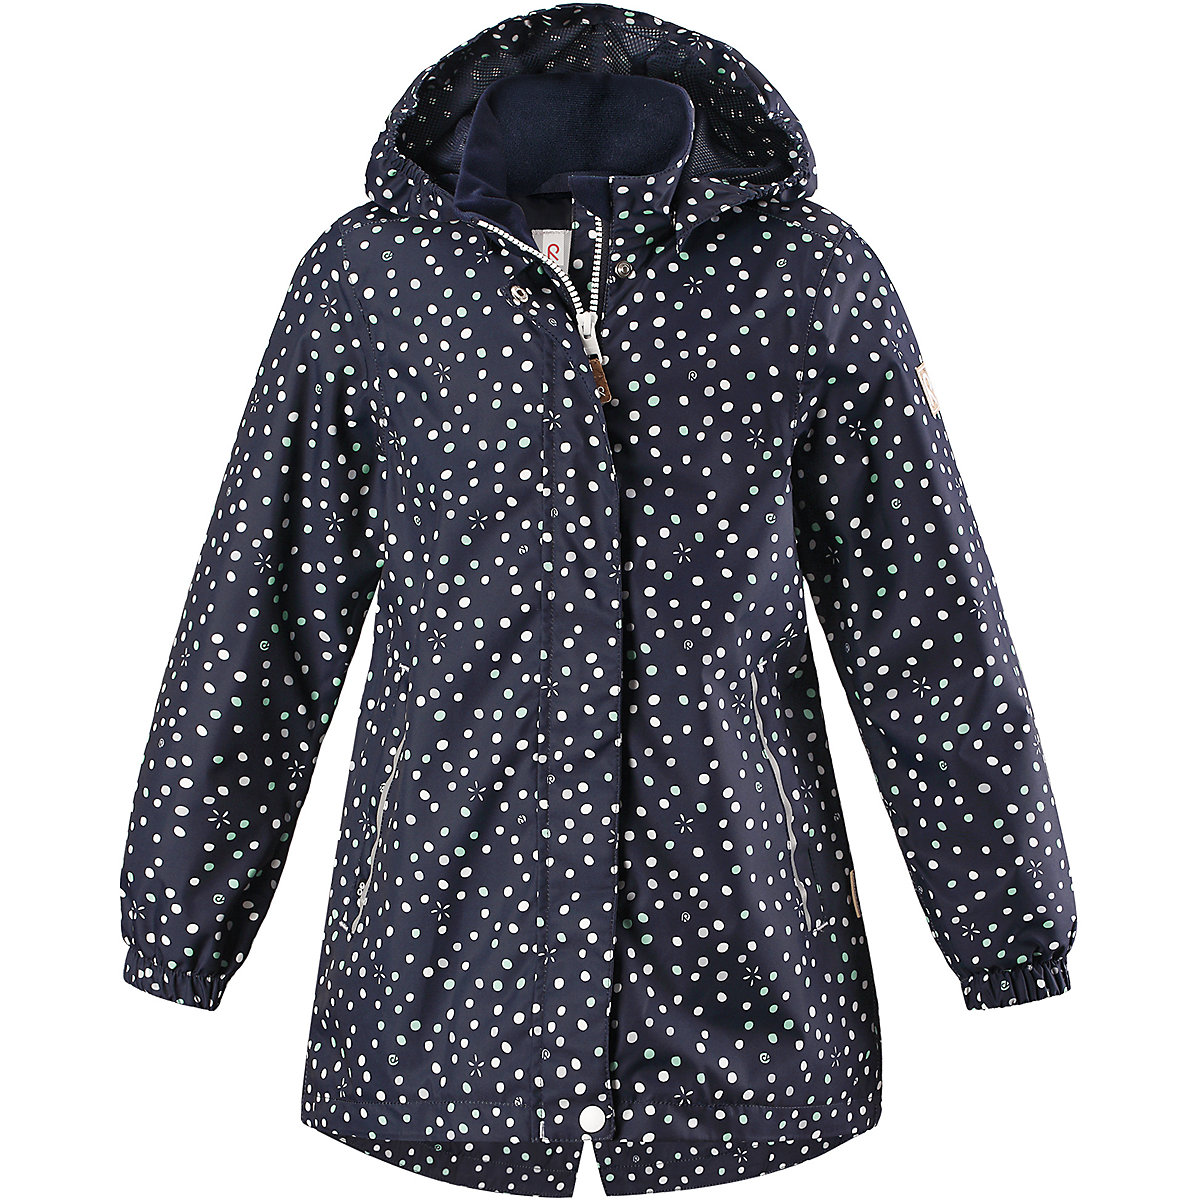 REIMA Jackets & Coats 7632638 for girls baby clothing winter warm boy girl jacket Polyester 2016 new kuiu guide dcs jacket hunting jackets sitka